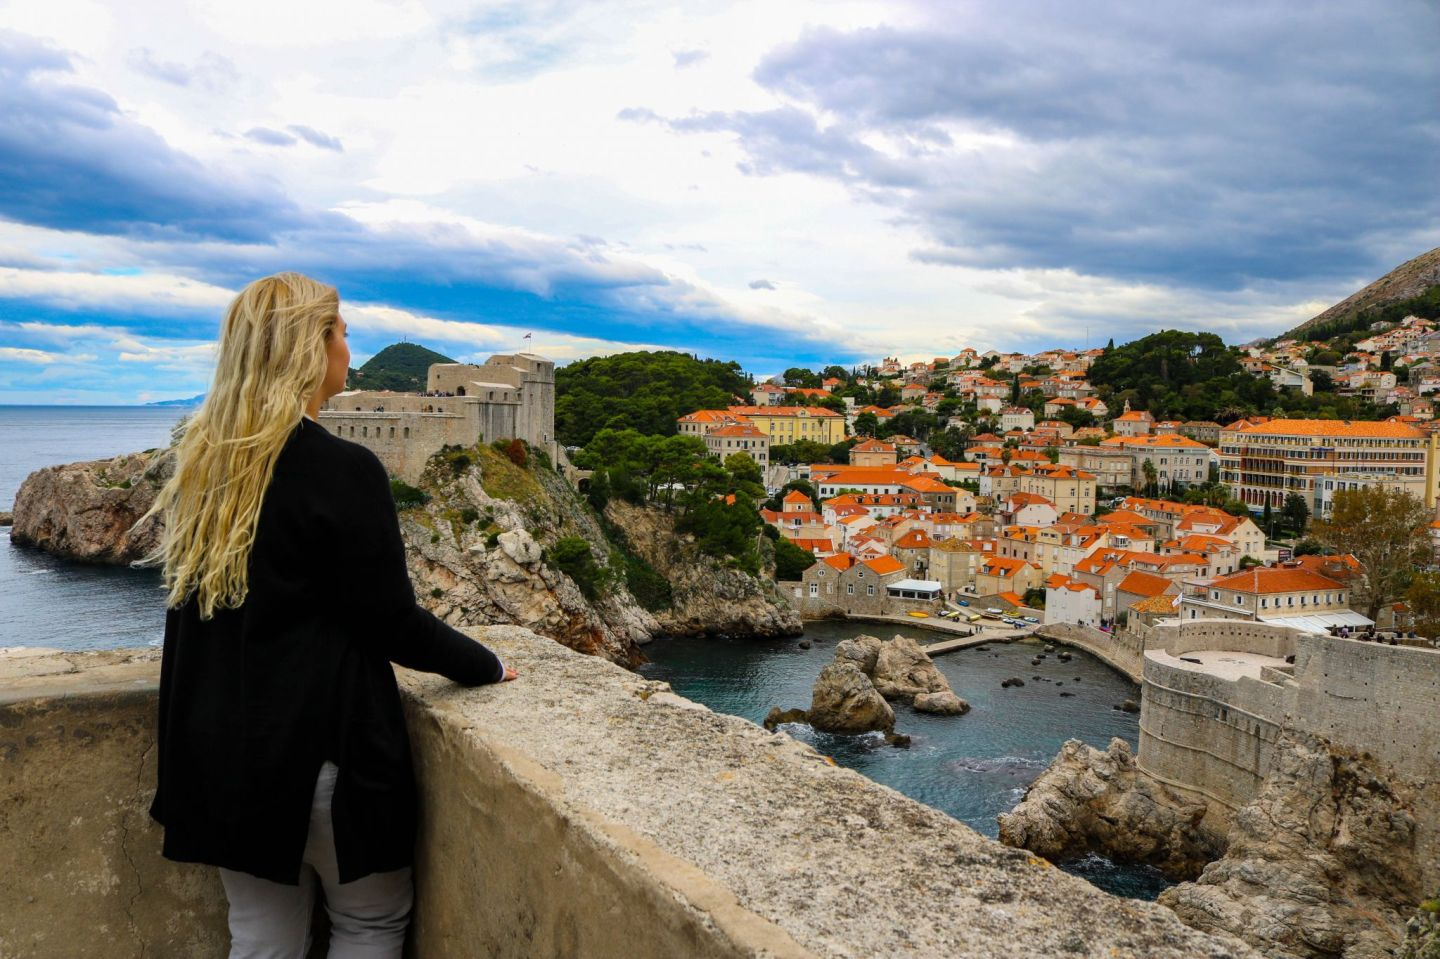 48 hours in Dubrovnik - A Guide to the Pearl of the Adriatic